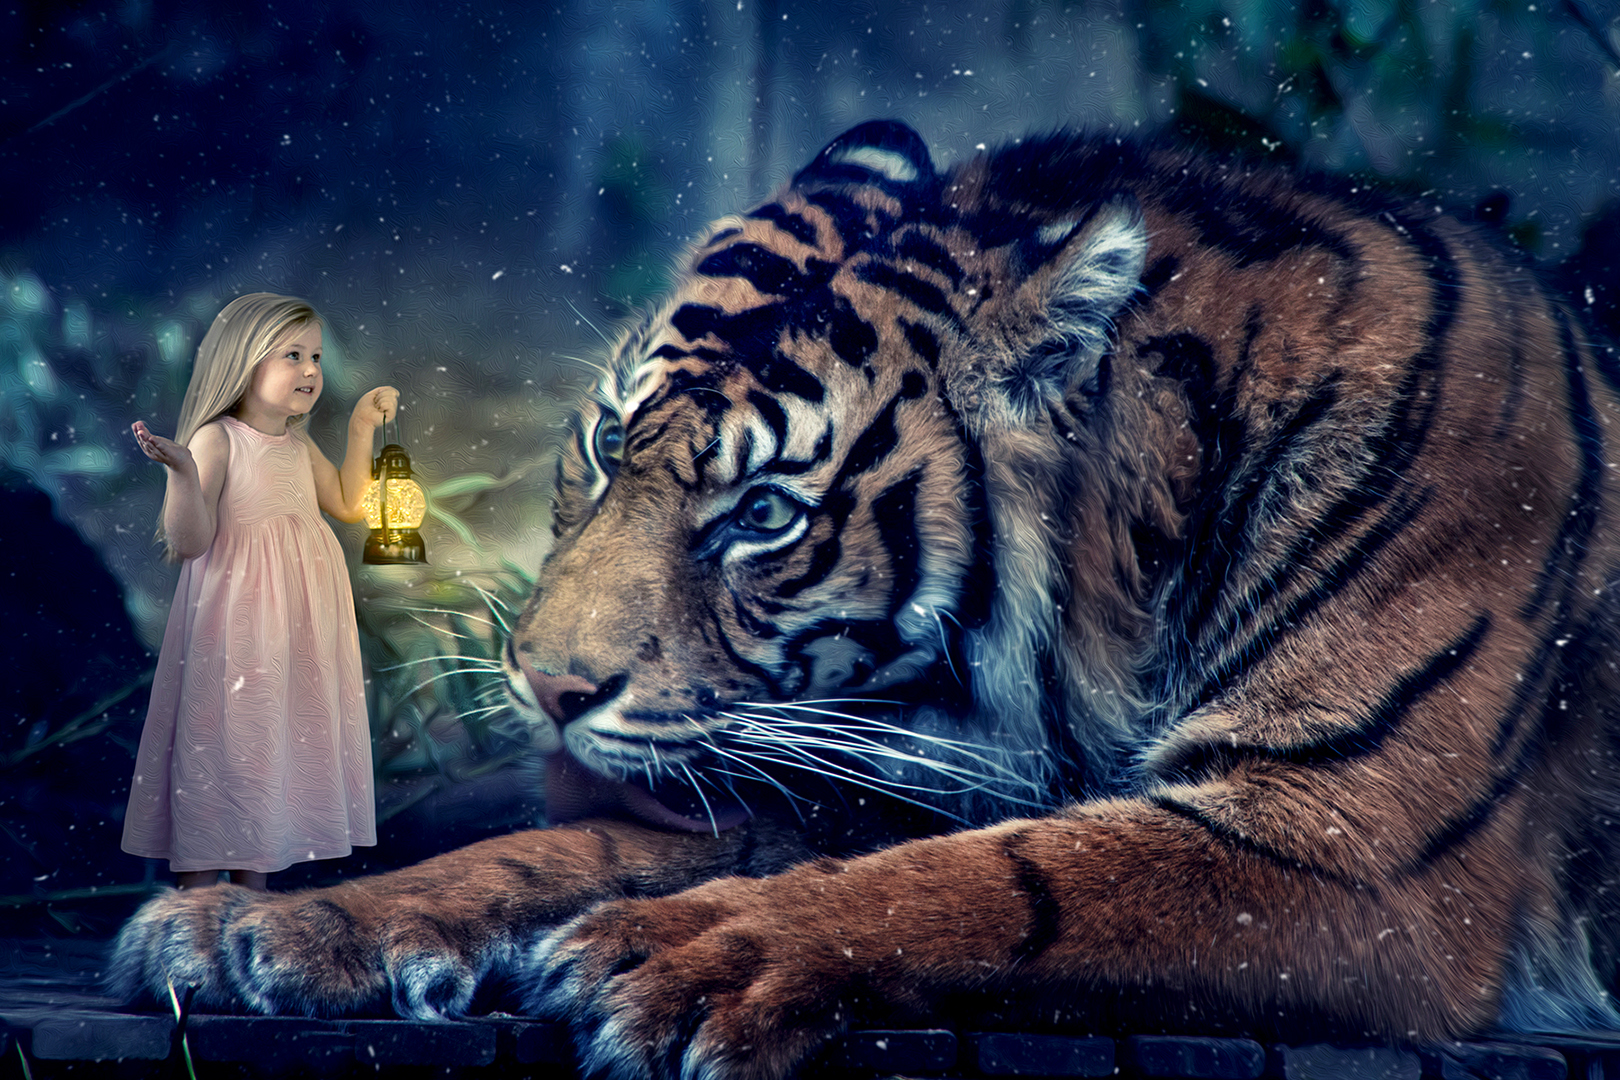 """2018 Creative Section """"Tiger Lilly"""" by Denise Perentin: Awarded SSNEP Silver Medal"""